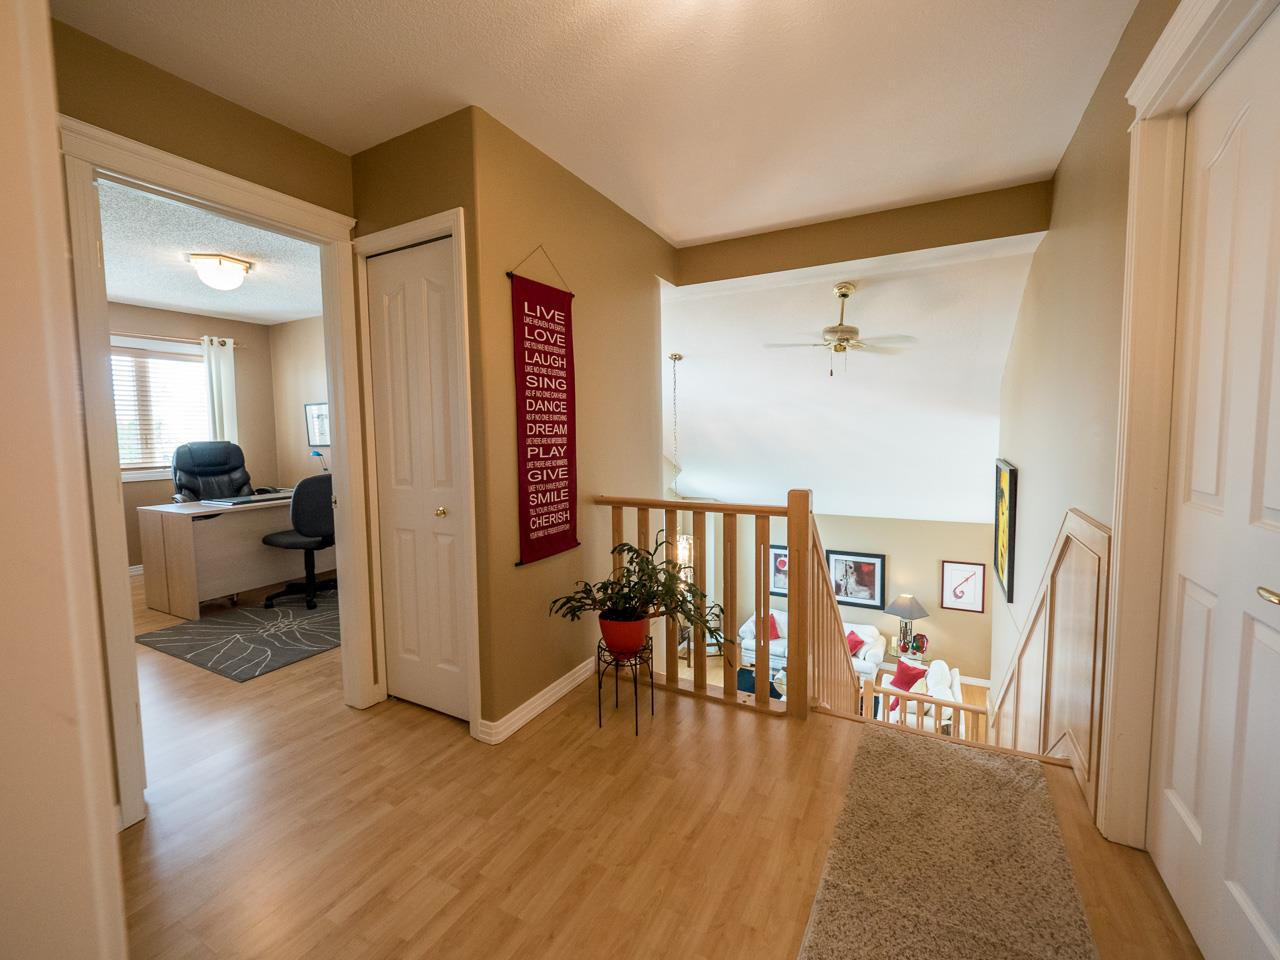 Photo 13: 205 WEBER Place in Edmonton: Zone 20 House for sale : MLS® # E4077601